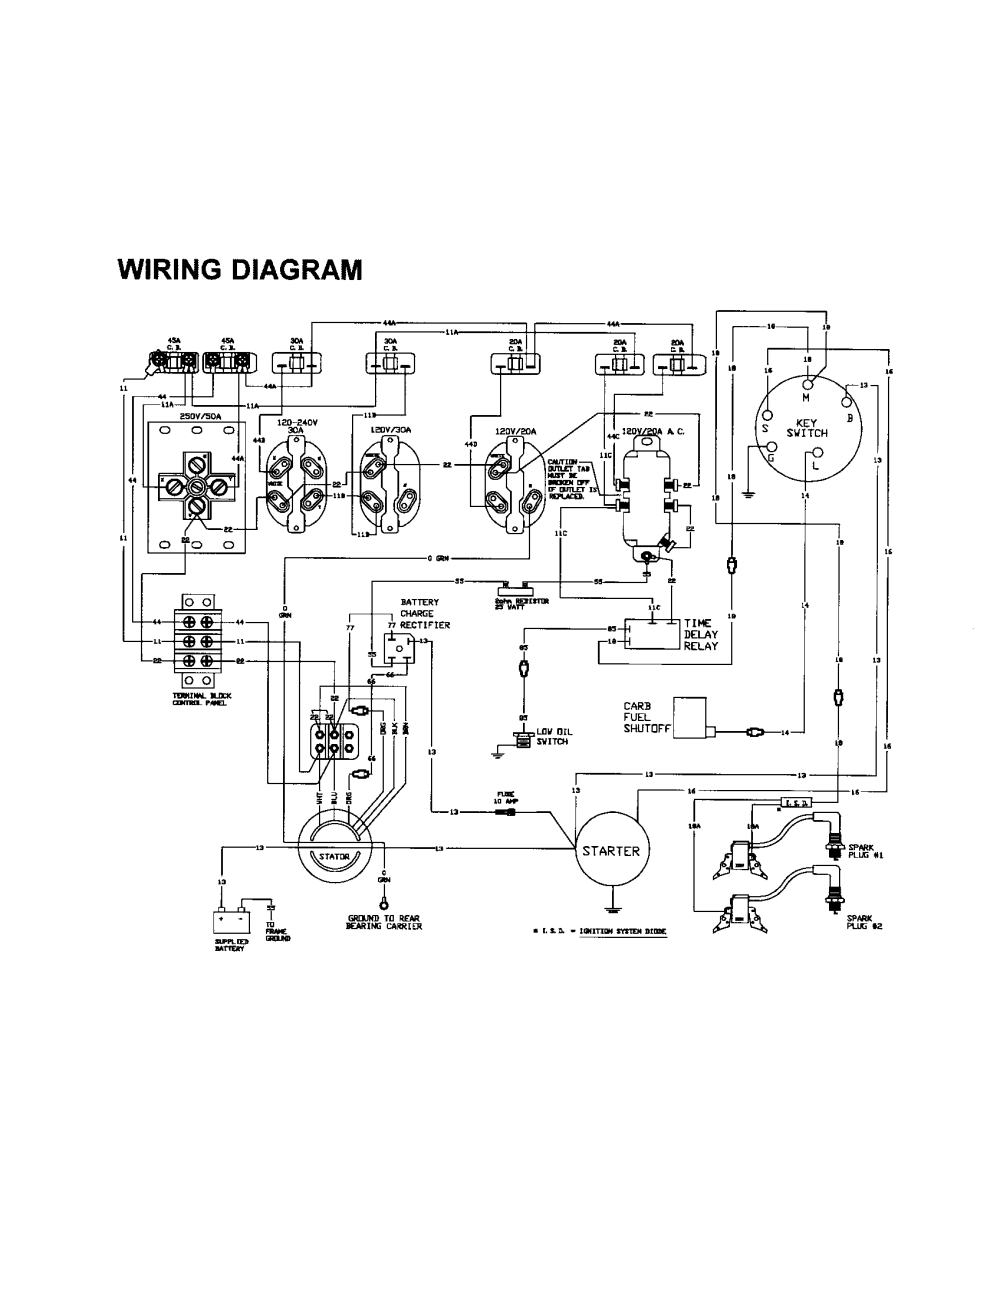 medium resolution of generac wiring diagram wiring diagram for you exit sign diagram generac control diagram